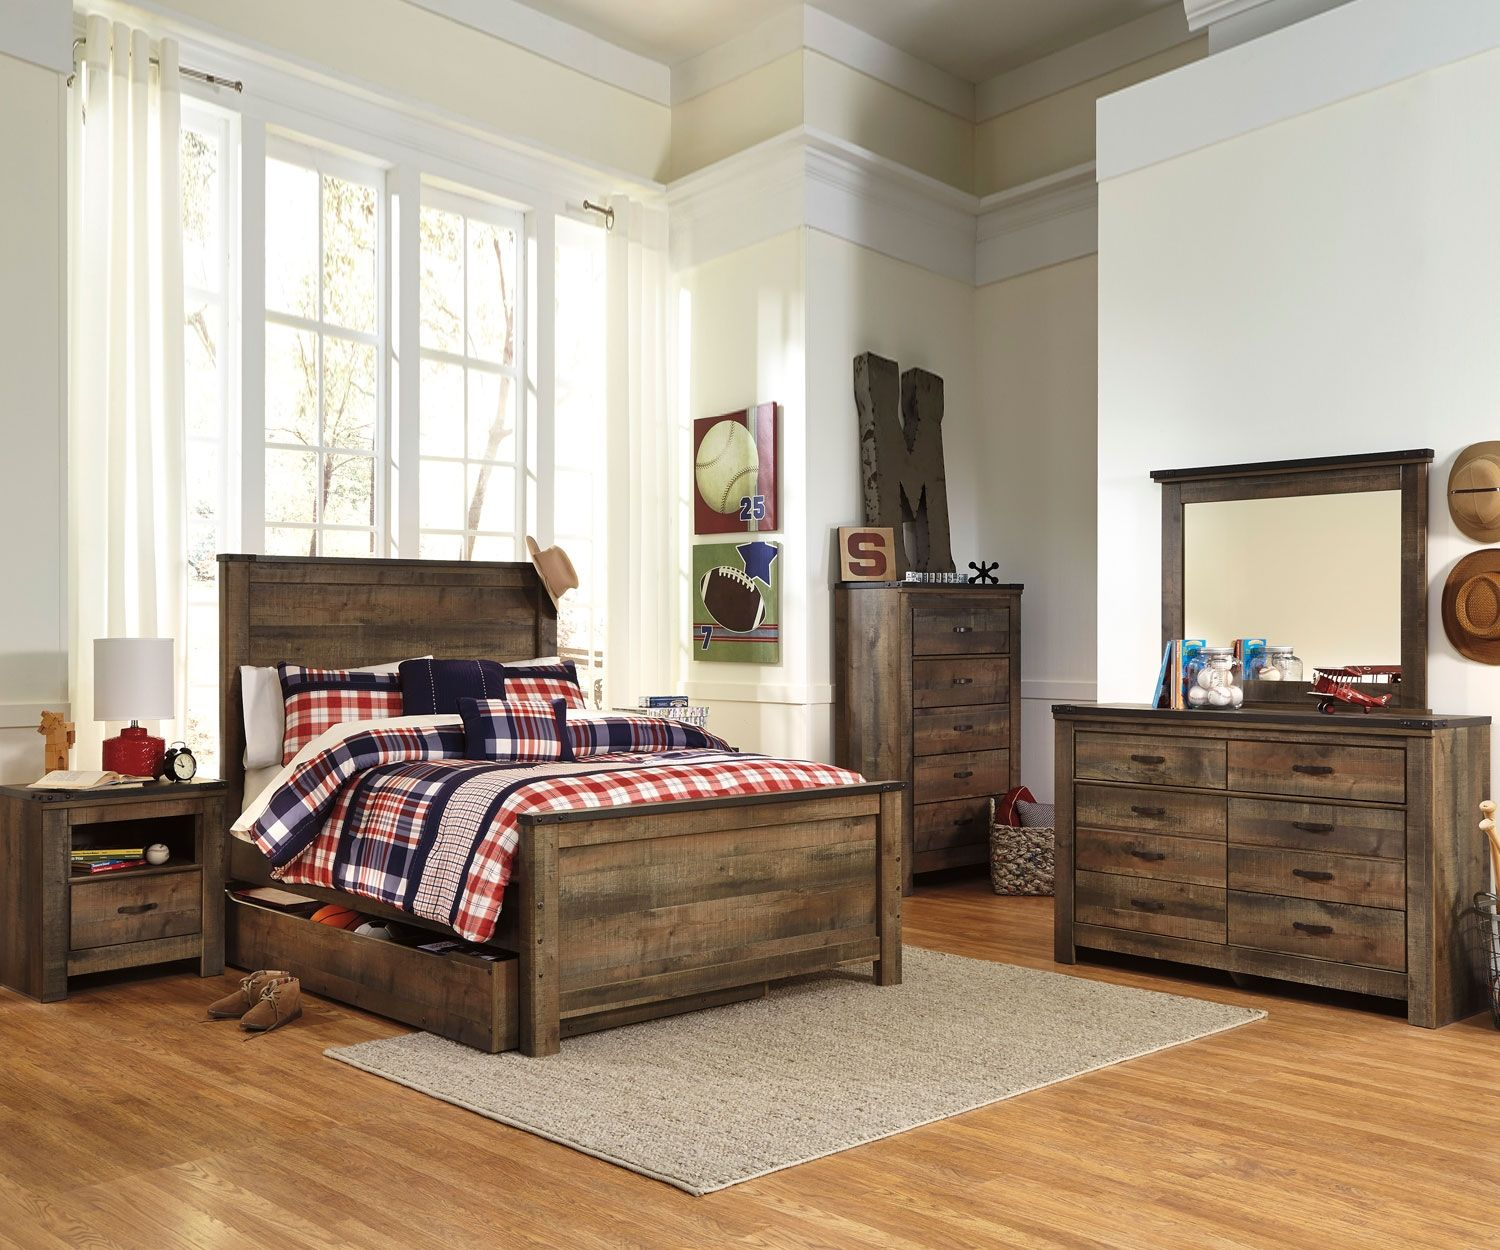 Buy Our Ashley Trinell B446 Full Size Panel Bed At Kids